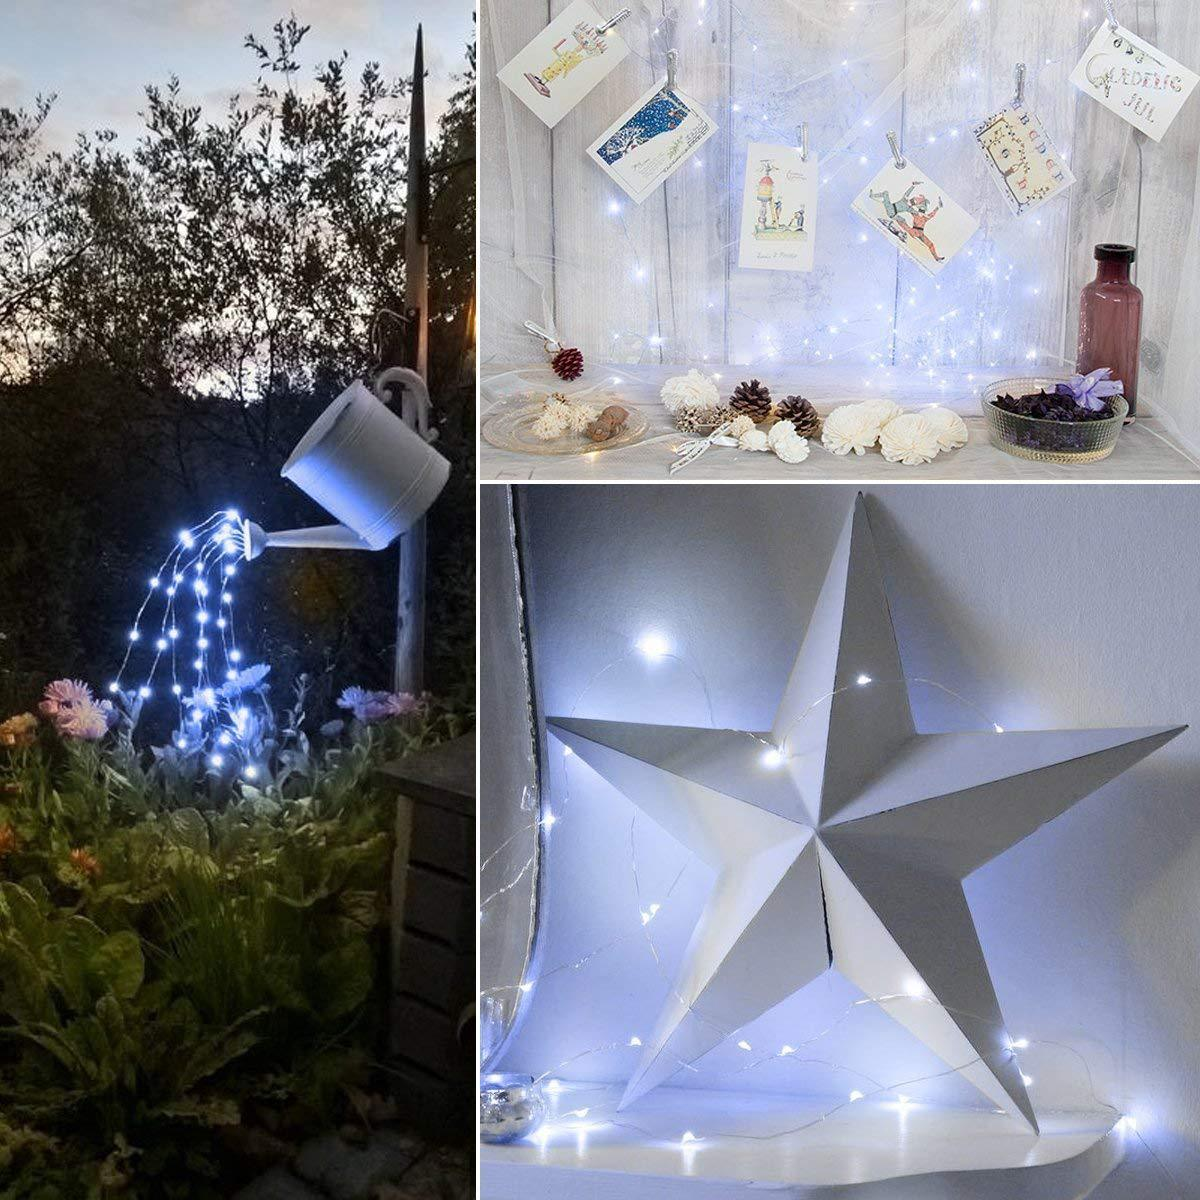 50 100 200 LED String Solar Powered Fairy Lights Garden Christmas Party Outdoor